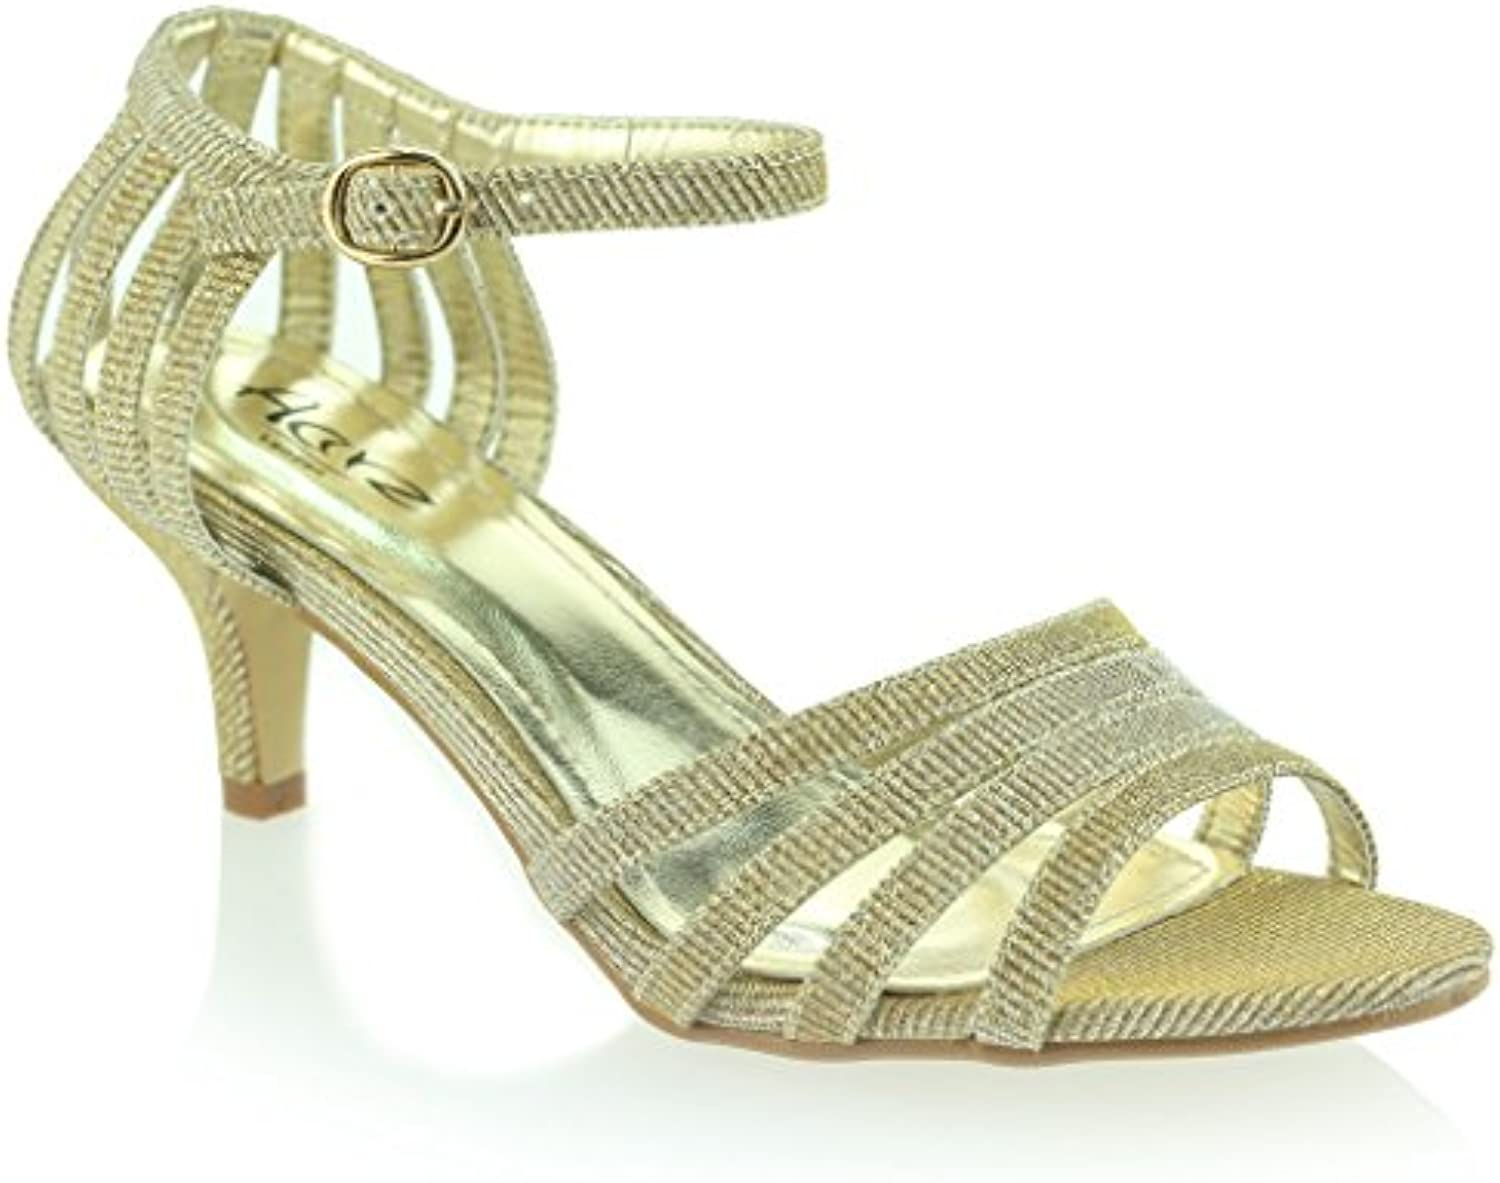 19a4cbc80e8 AARZ LONDON Women Ladies Sparkly Sparkly Sparkly Mid Heel Casual Evening  Wedding Party Prom Sandals Shoes Size B06XGZMLZZ Parent 6069cd